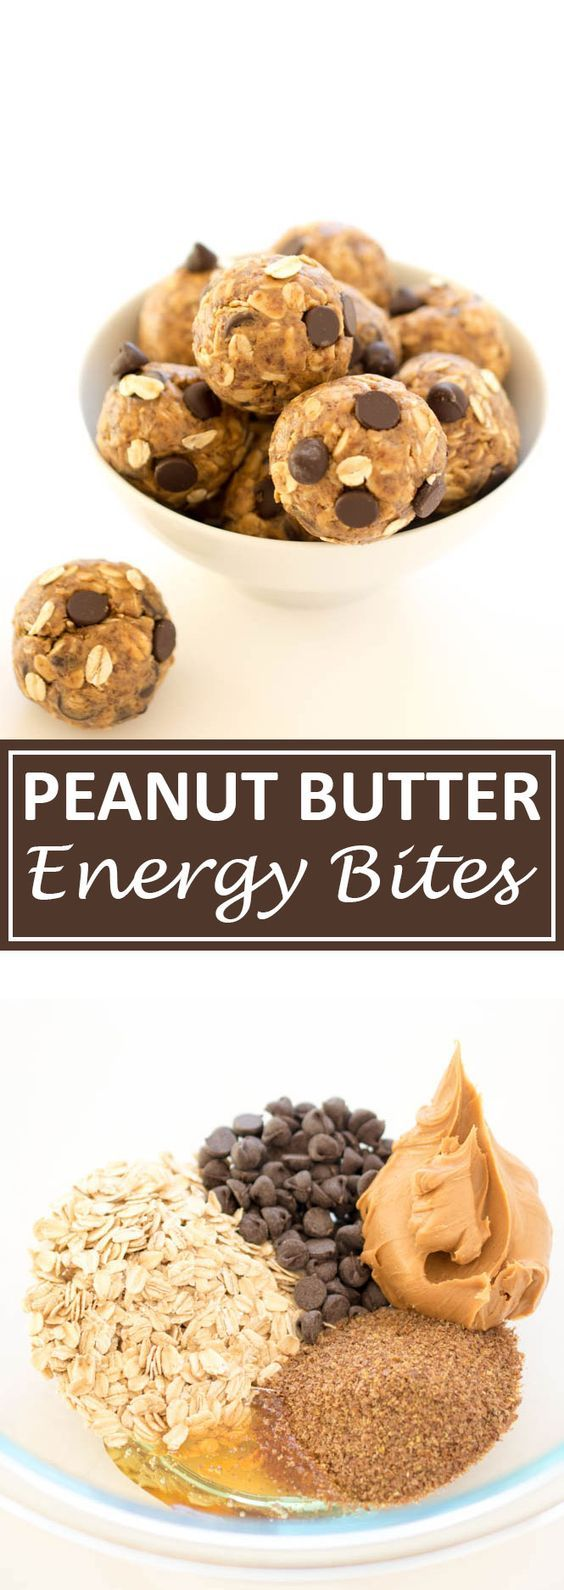 No Bake 5 Ingredient Peanut Butter Energy Bites. Loaded with old fashioned oats, peanut butter and flax seeds.   chefsavvy.com